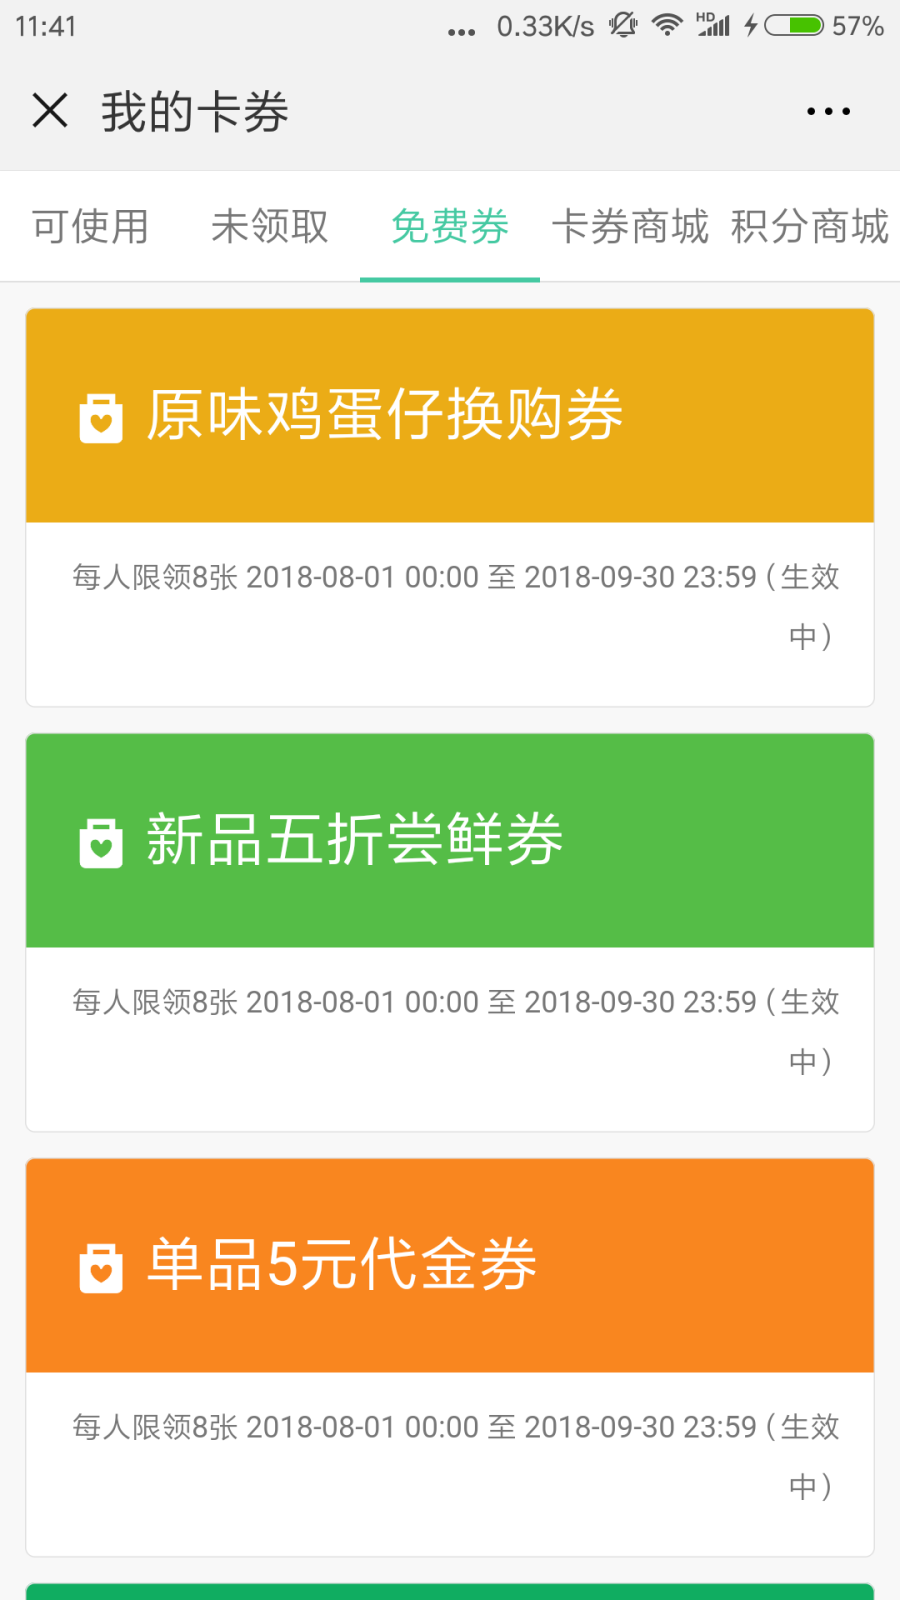 Screenshot_2018-08-27-11-41-09-726_com.tencent.mm.png